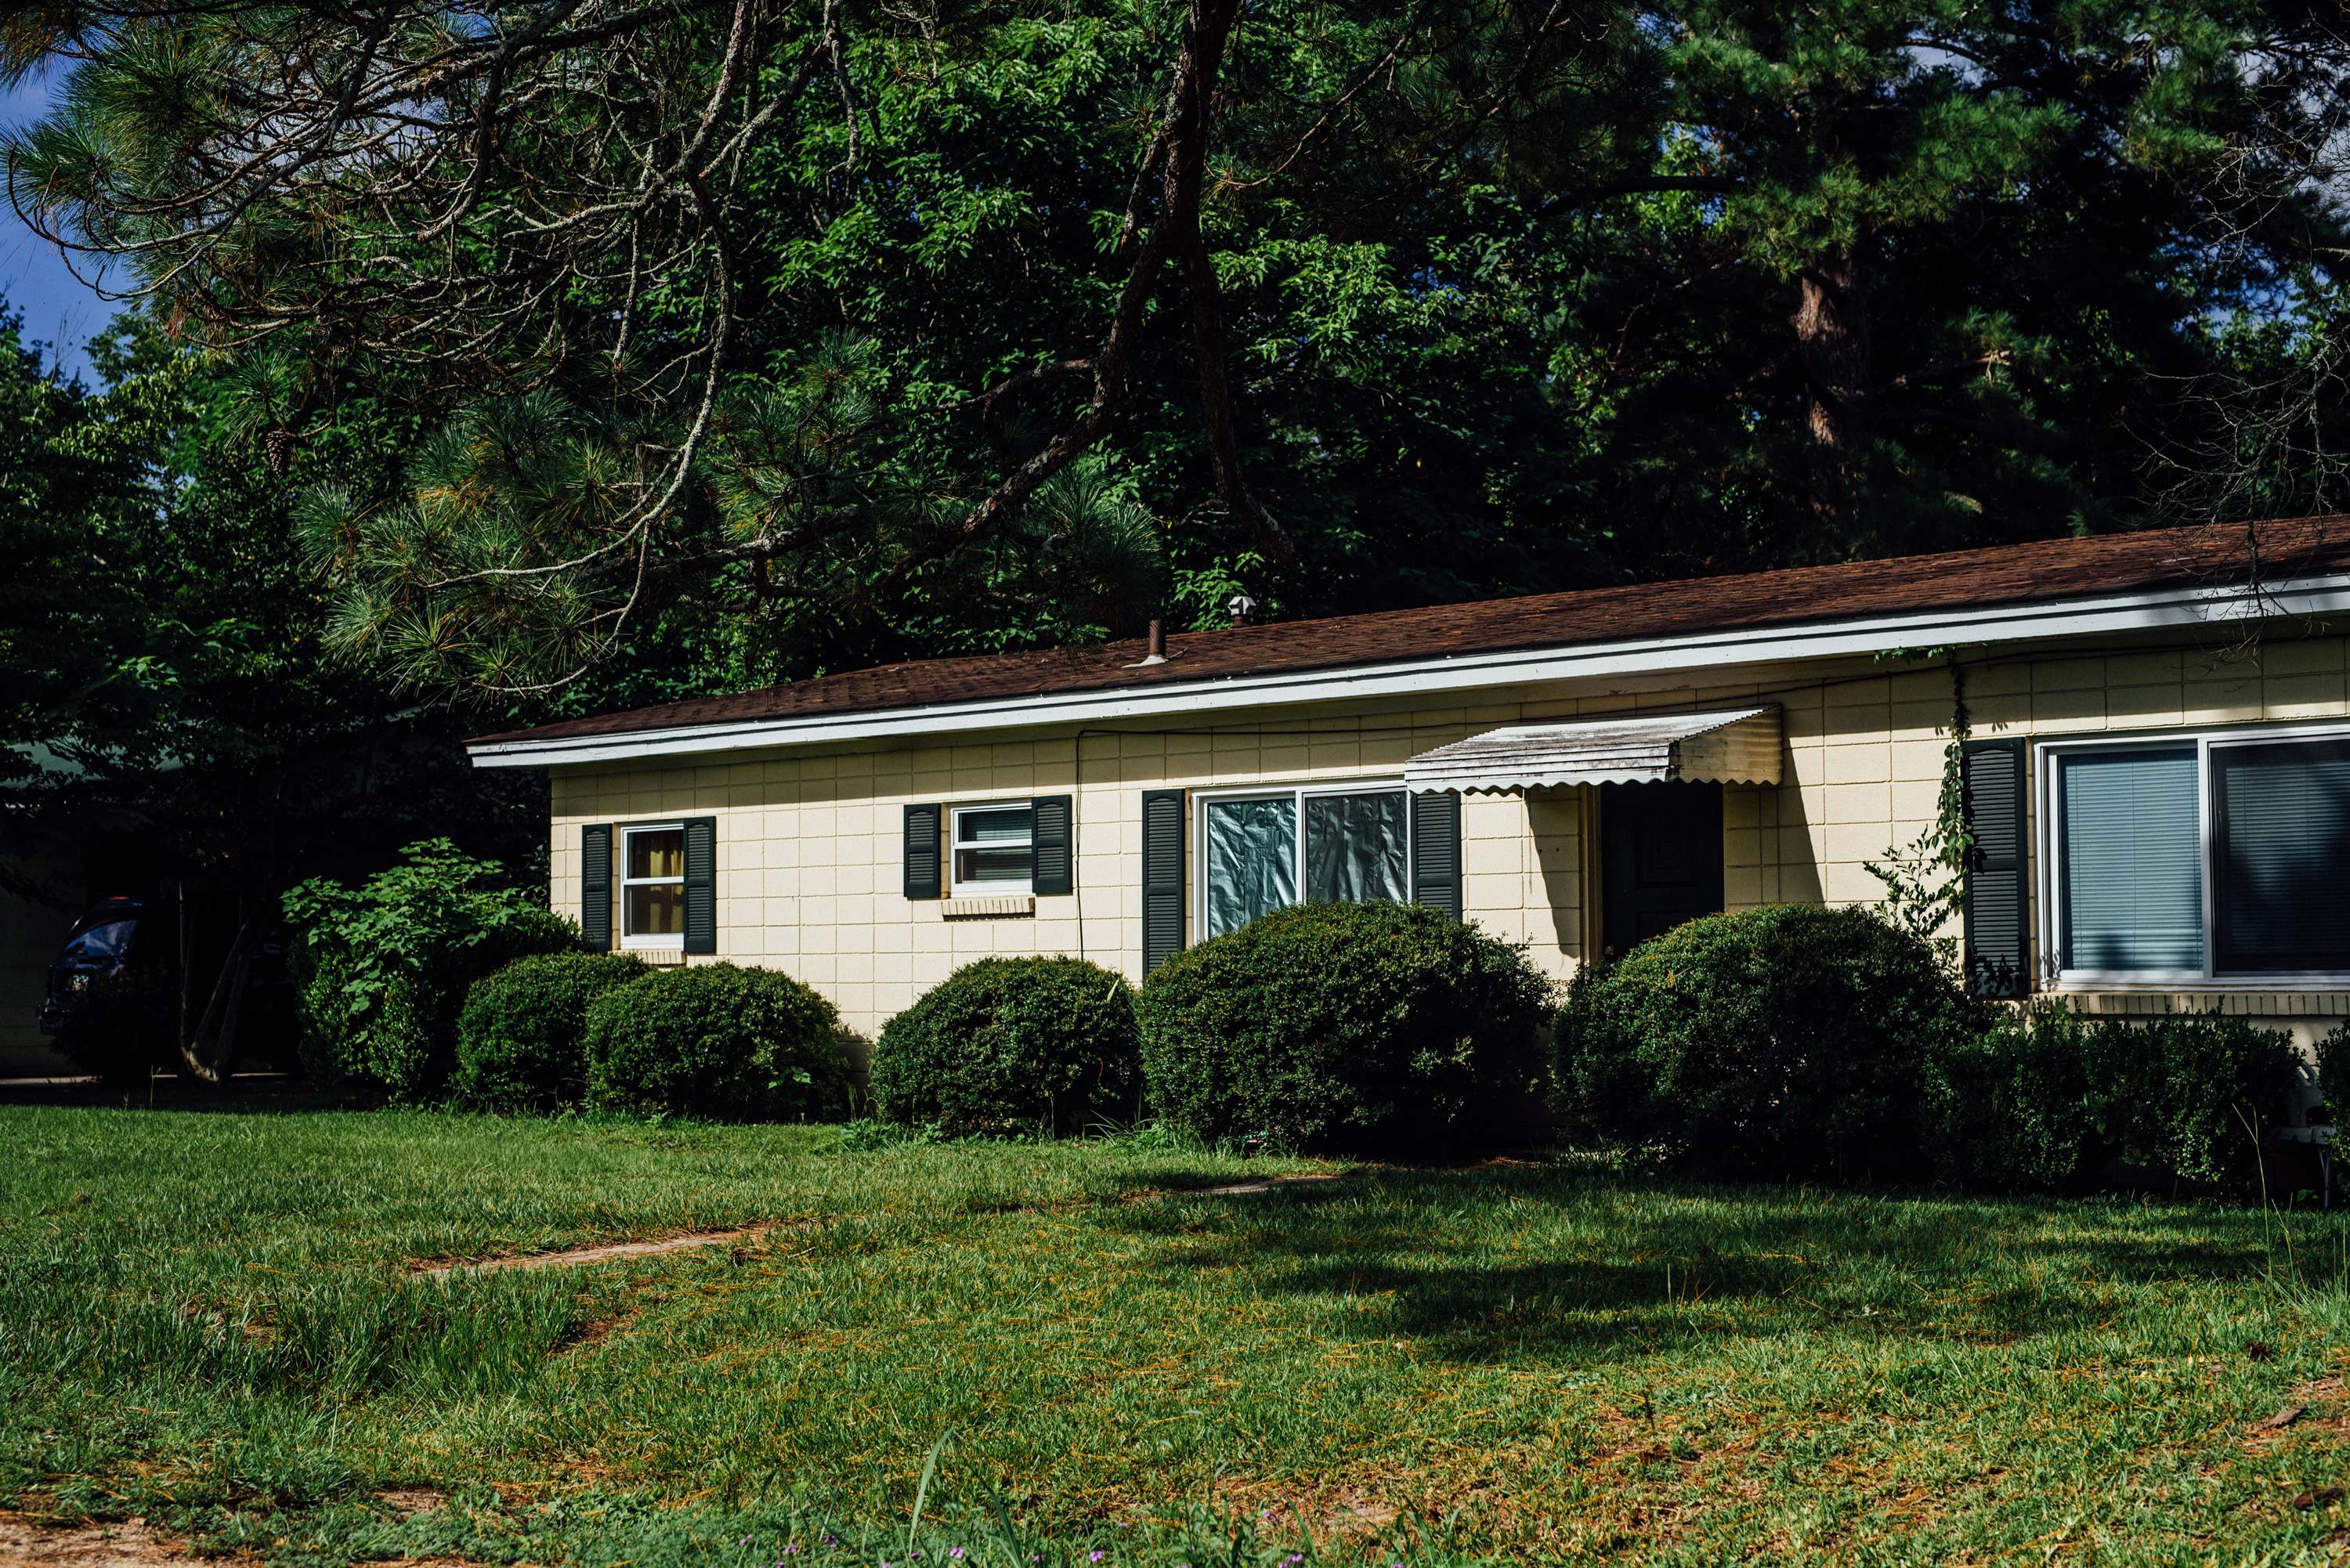 The home where Shailesh Patel was found murdered in the spring of 2000, months before the Bennett/Browning murder committed by Hercules Brown.